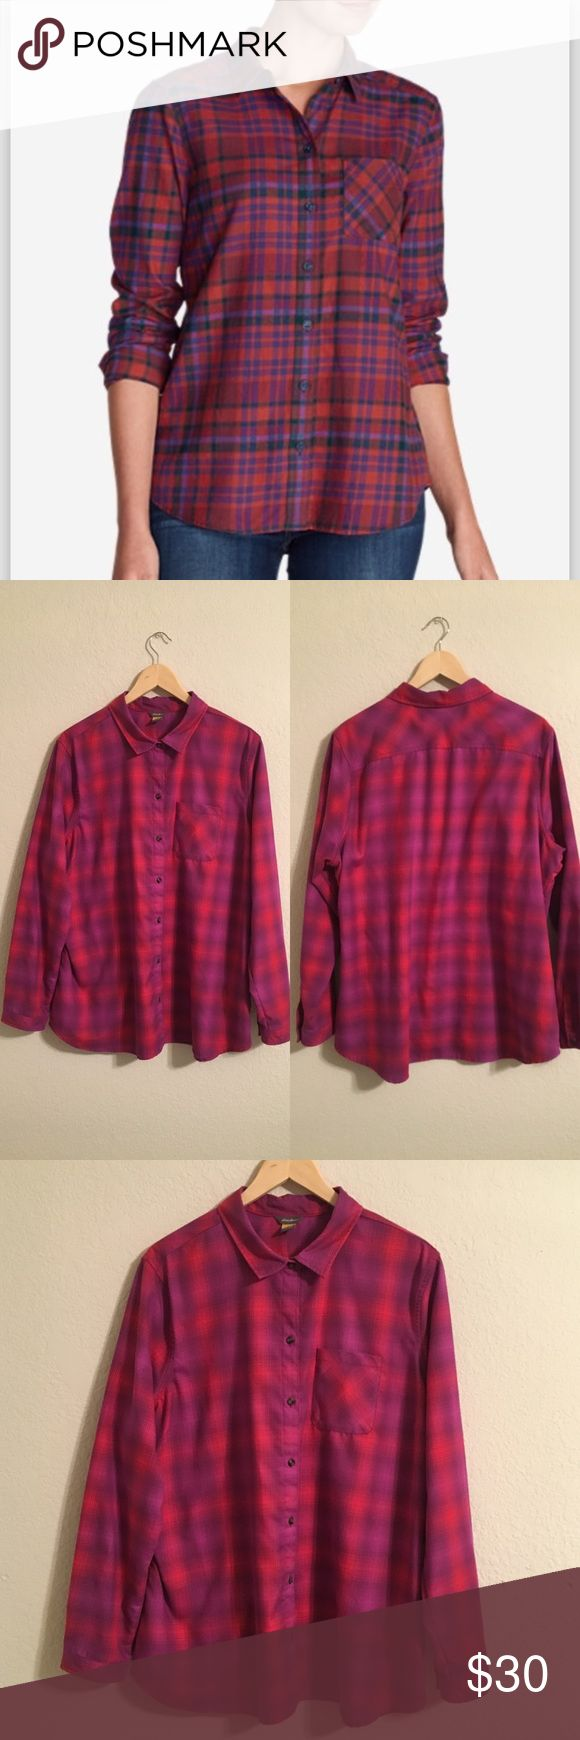 Best 25 red flannel shirt ideas on pinterest red for Super soft flannel shirts